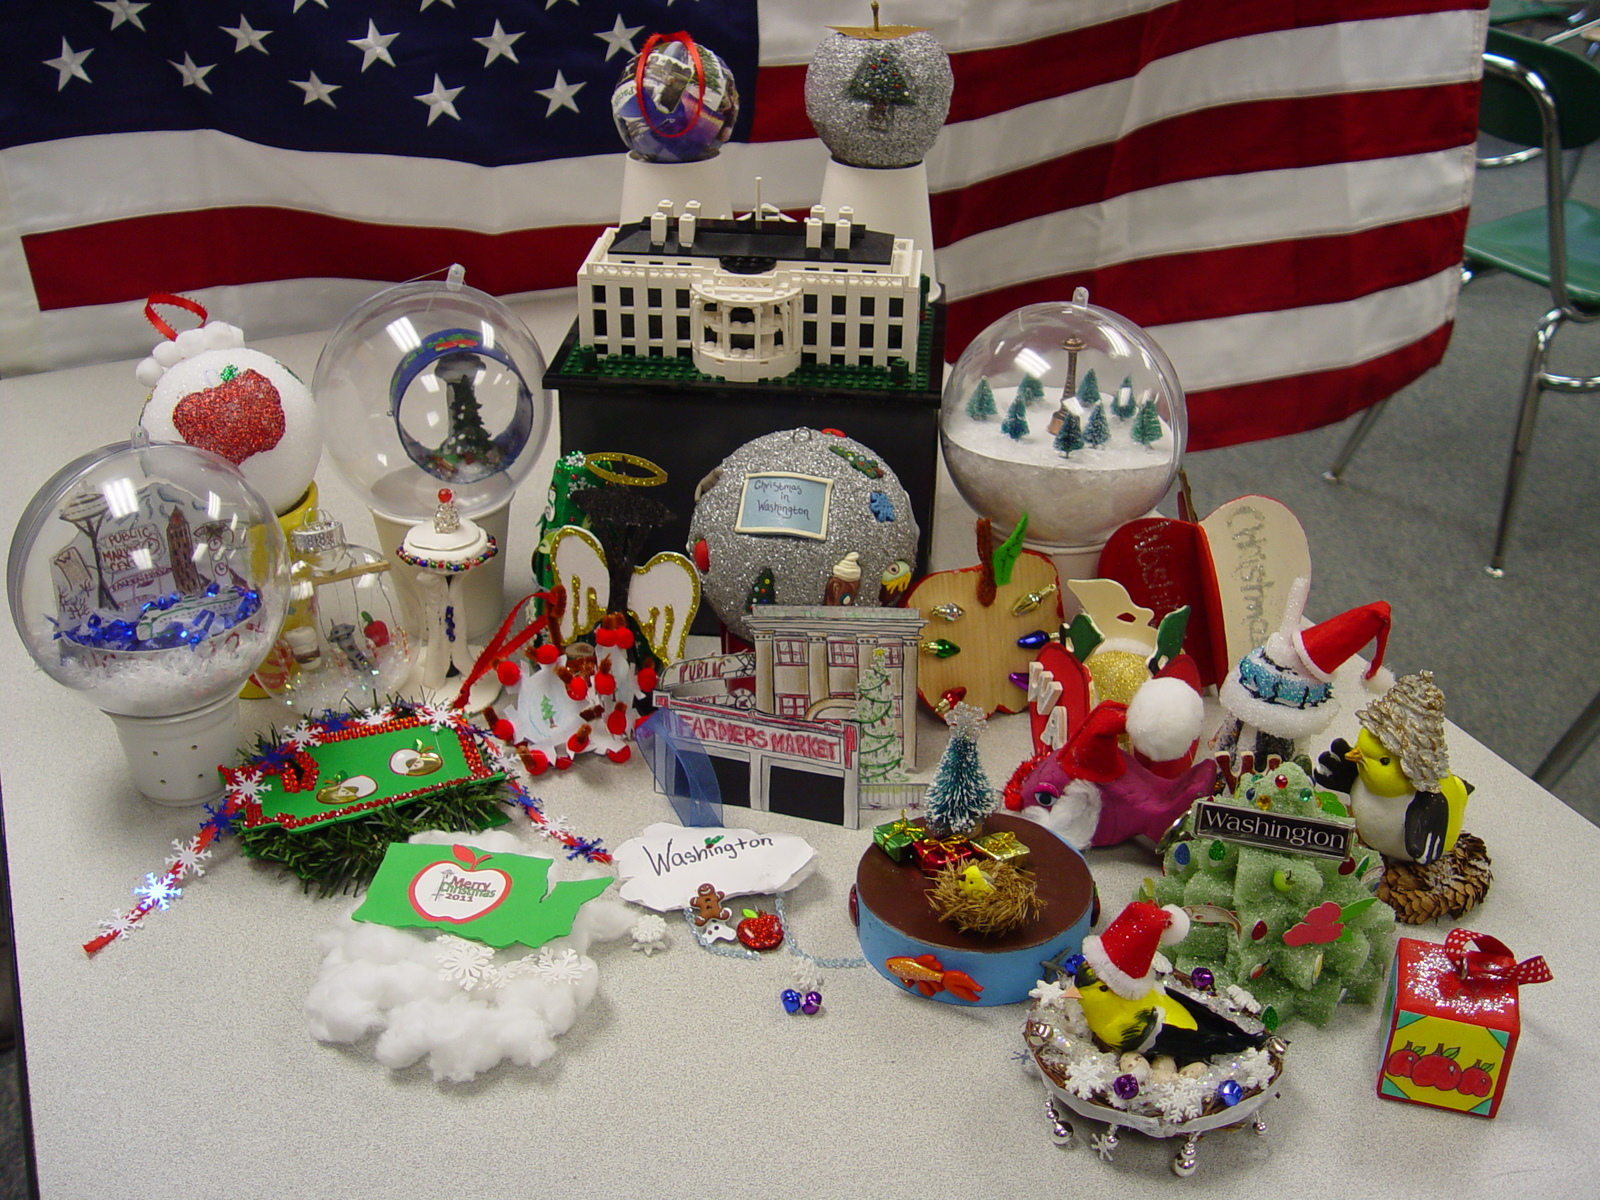 SeaTac students picked to make Christmas ornaments for state tree in Washington D.C.